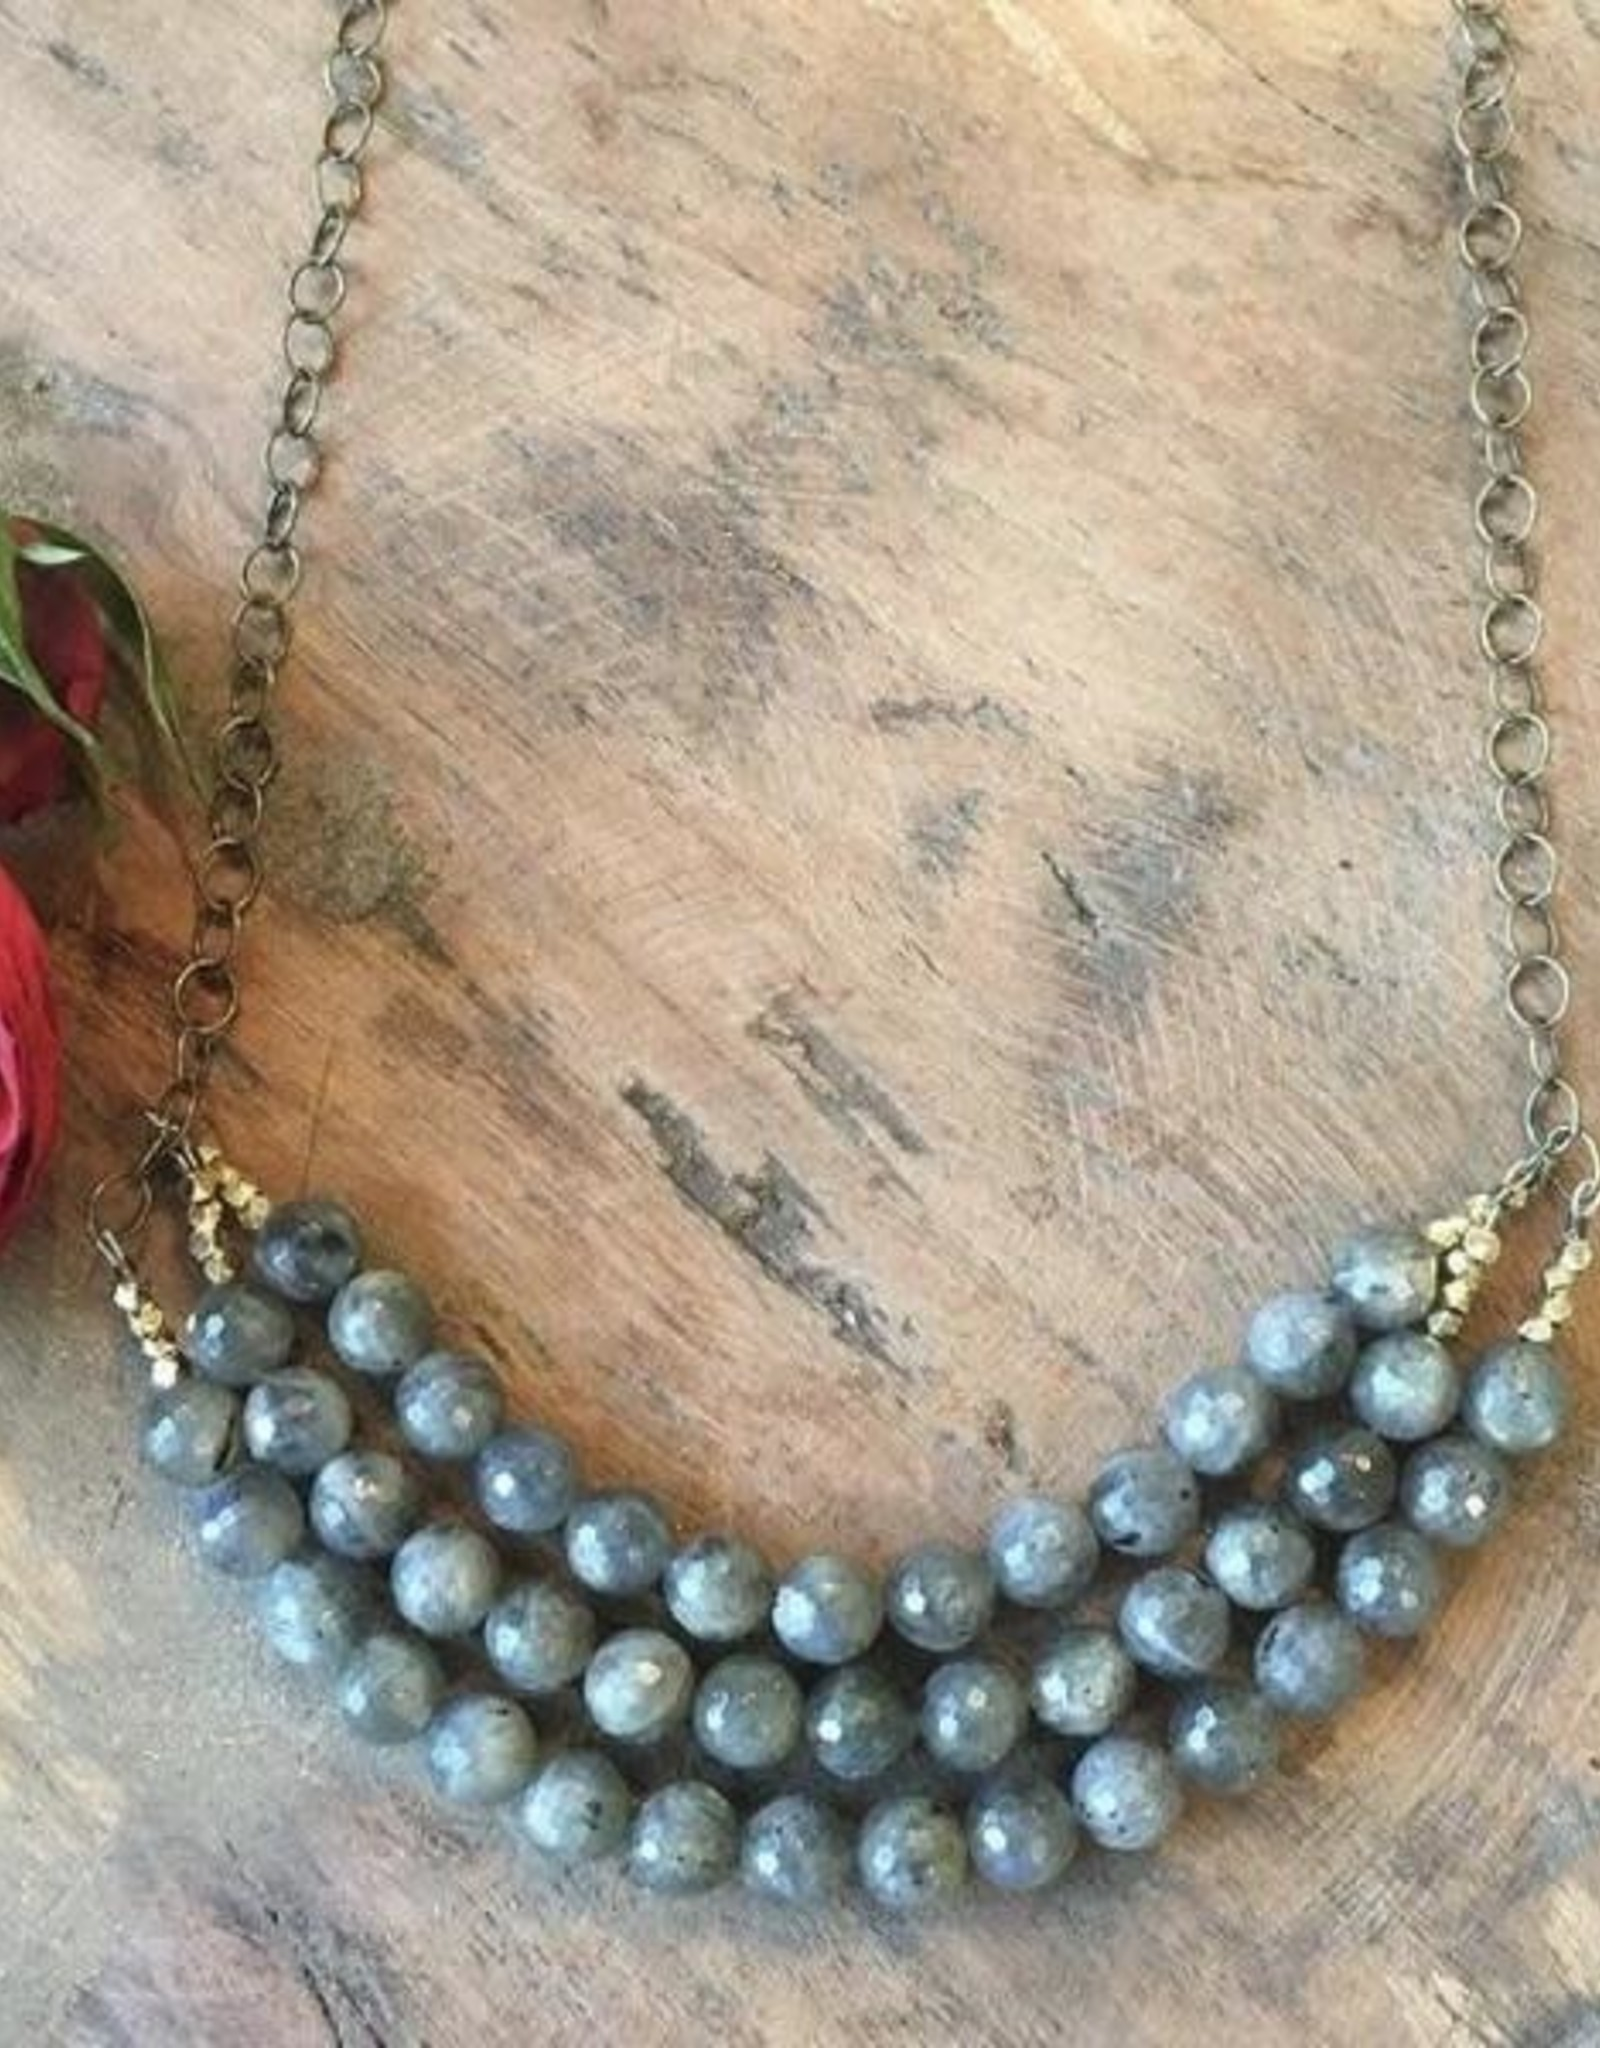 Harlow Harlow Labradorite Necklace with brass accents